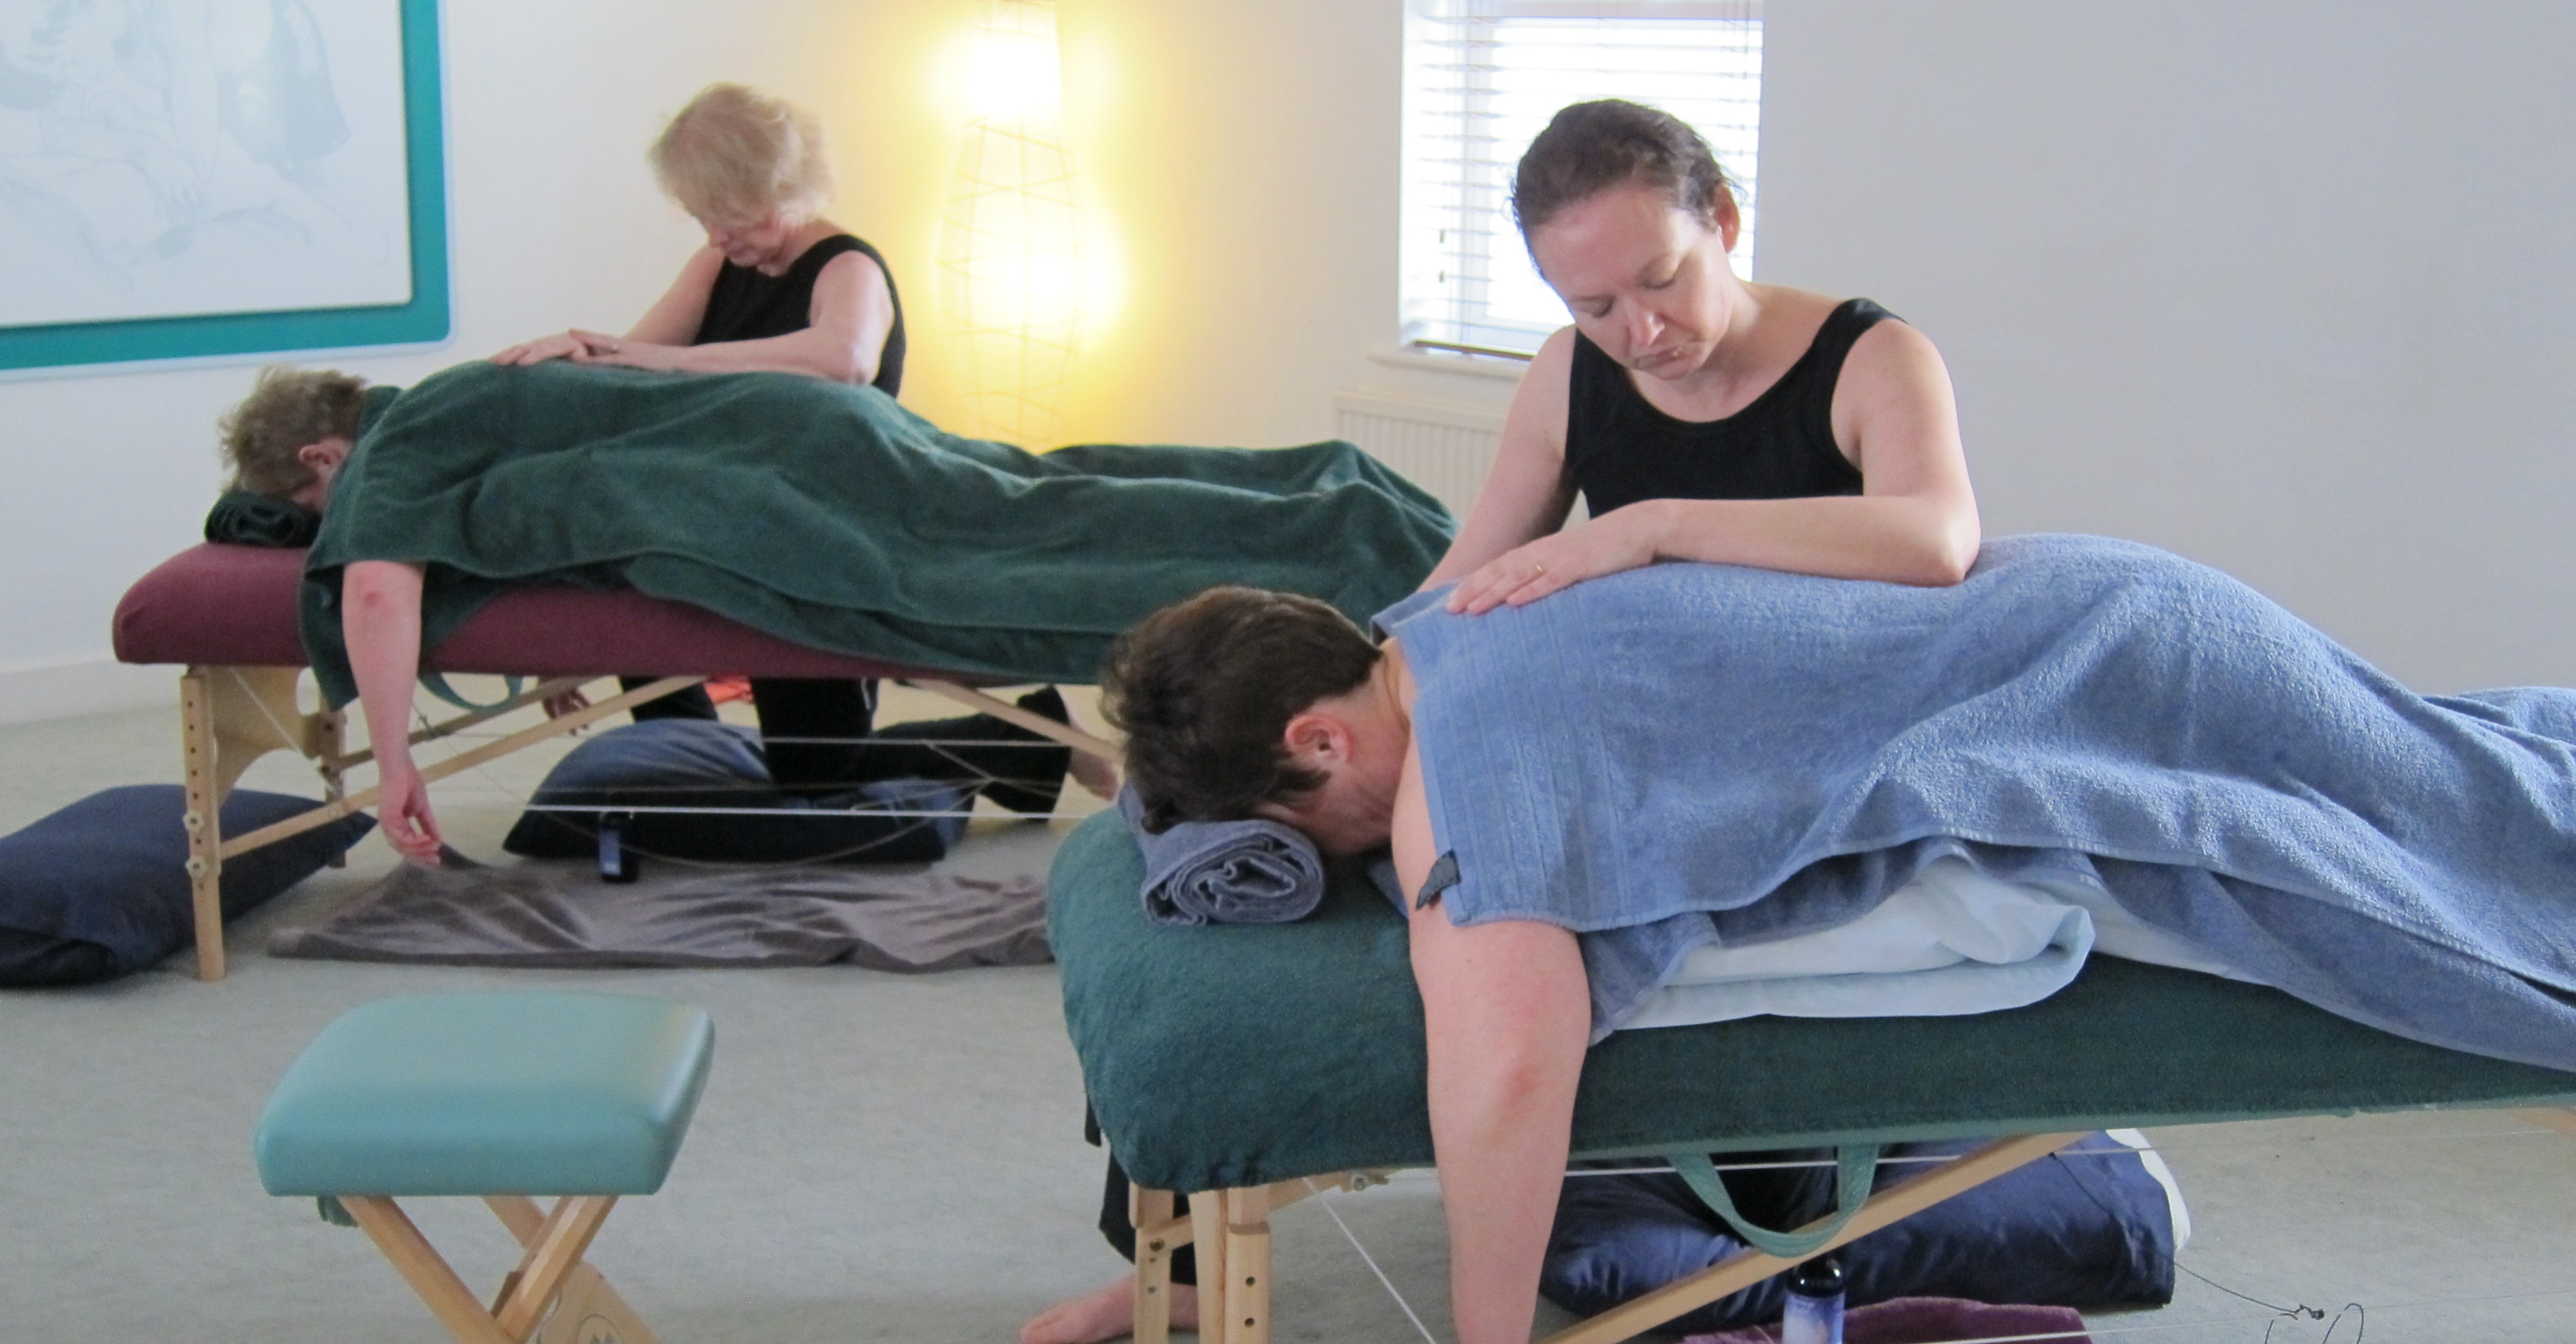 Two massage practitioners giving gentle soothing touch